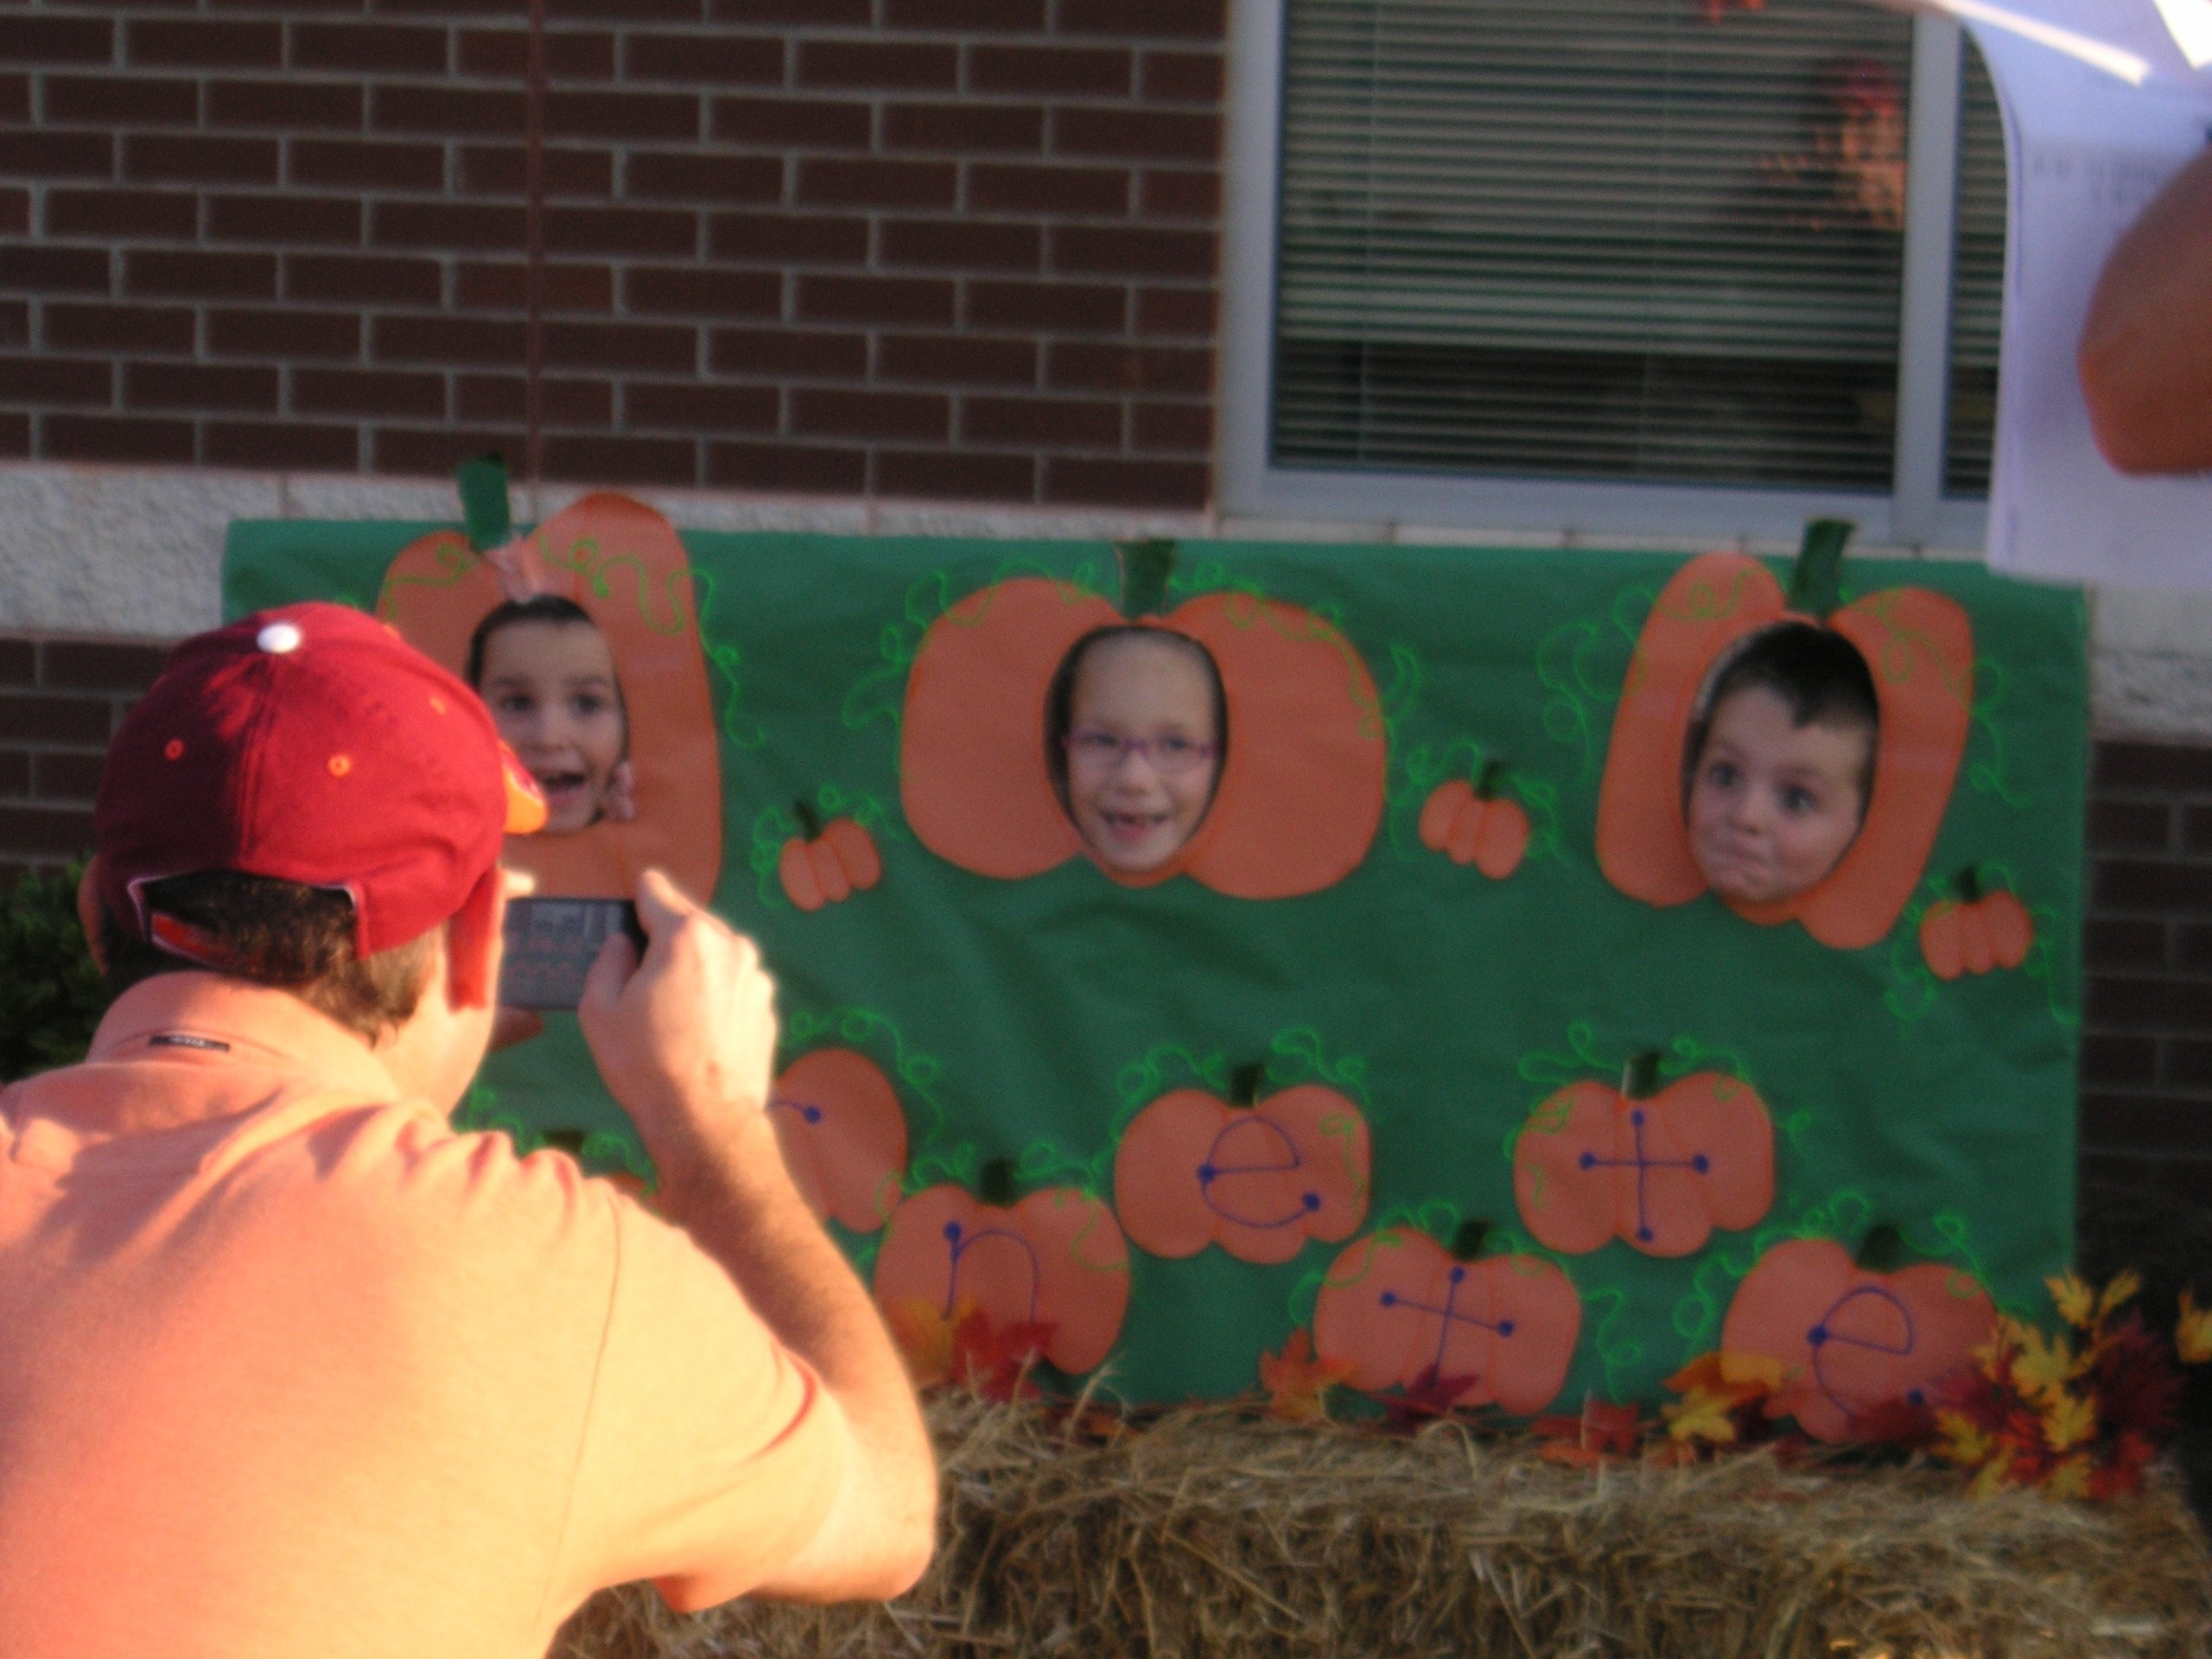 10 Unique Fall Festival Ideas For Adults photo op idea fall festival fun pinterest fall festival games 2020